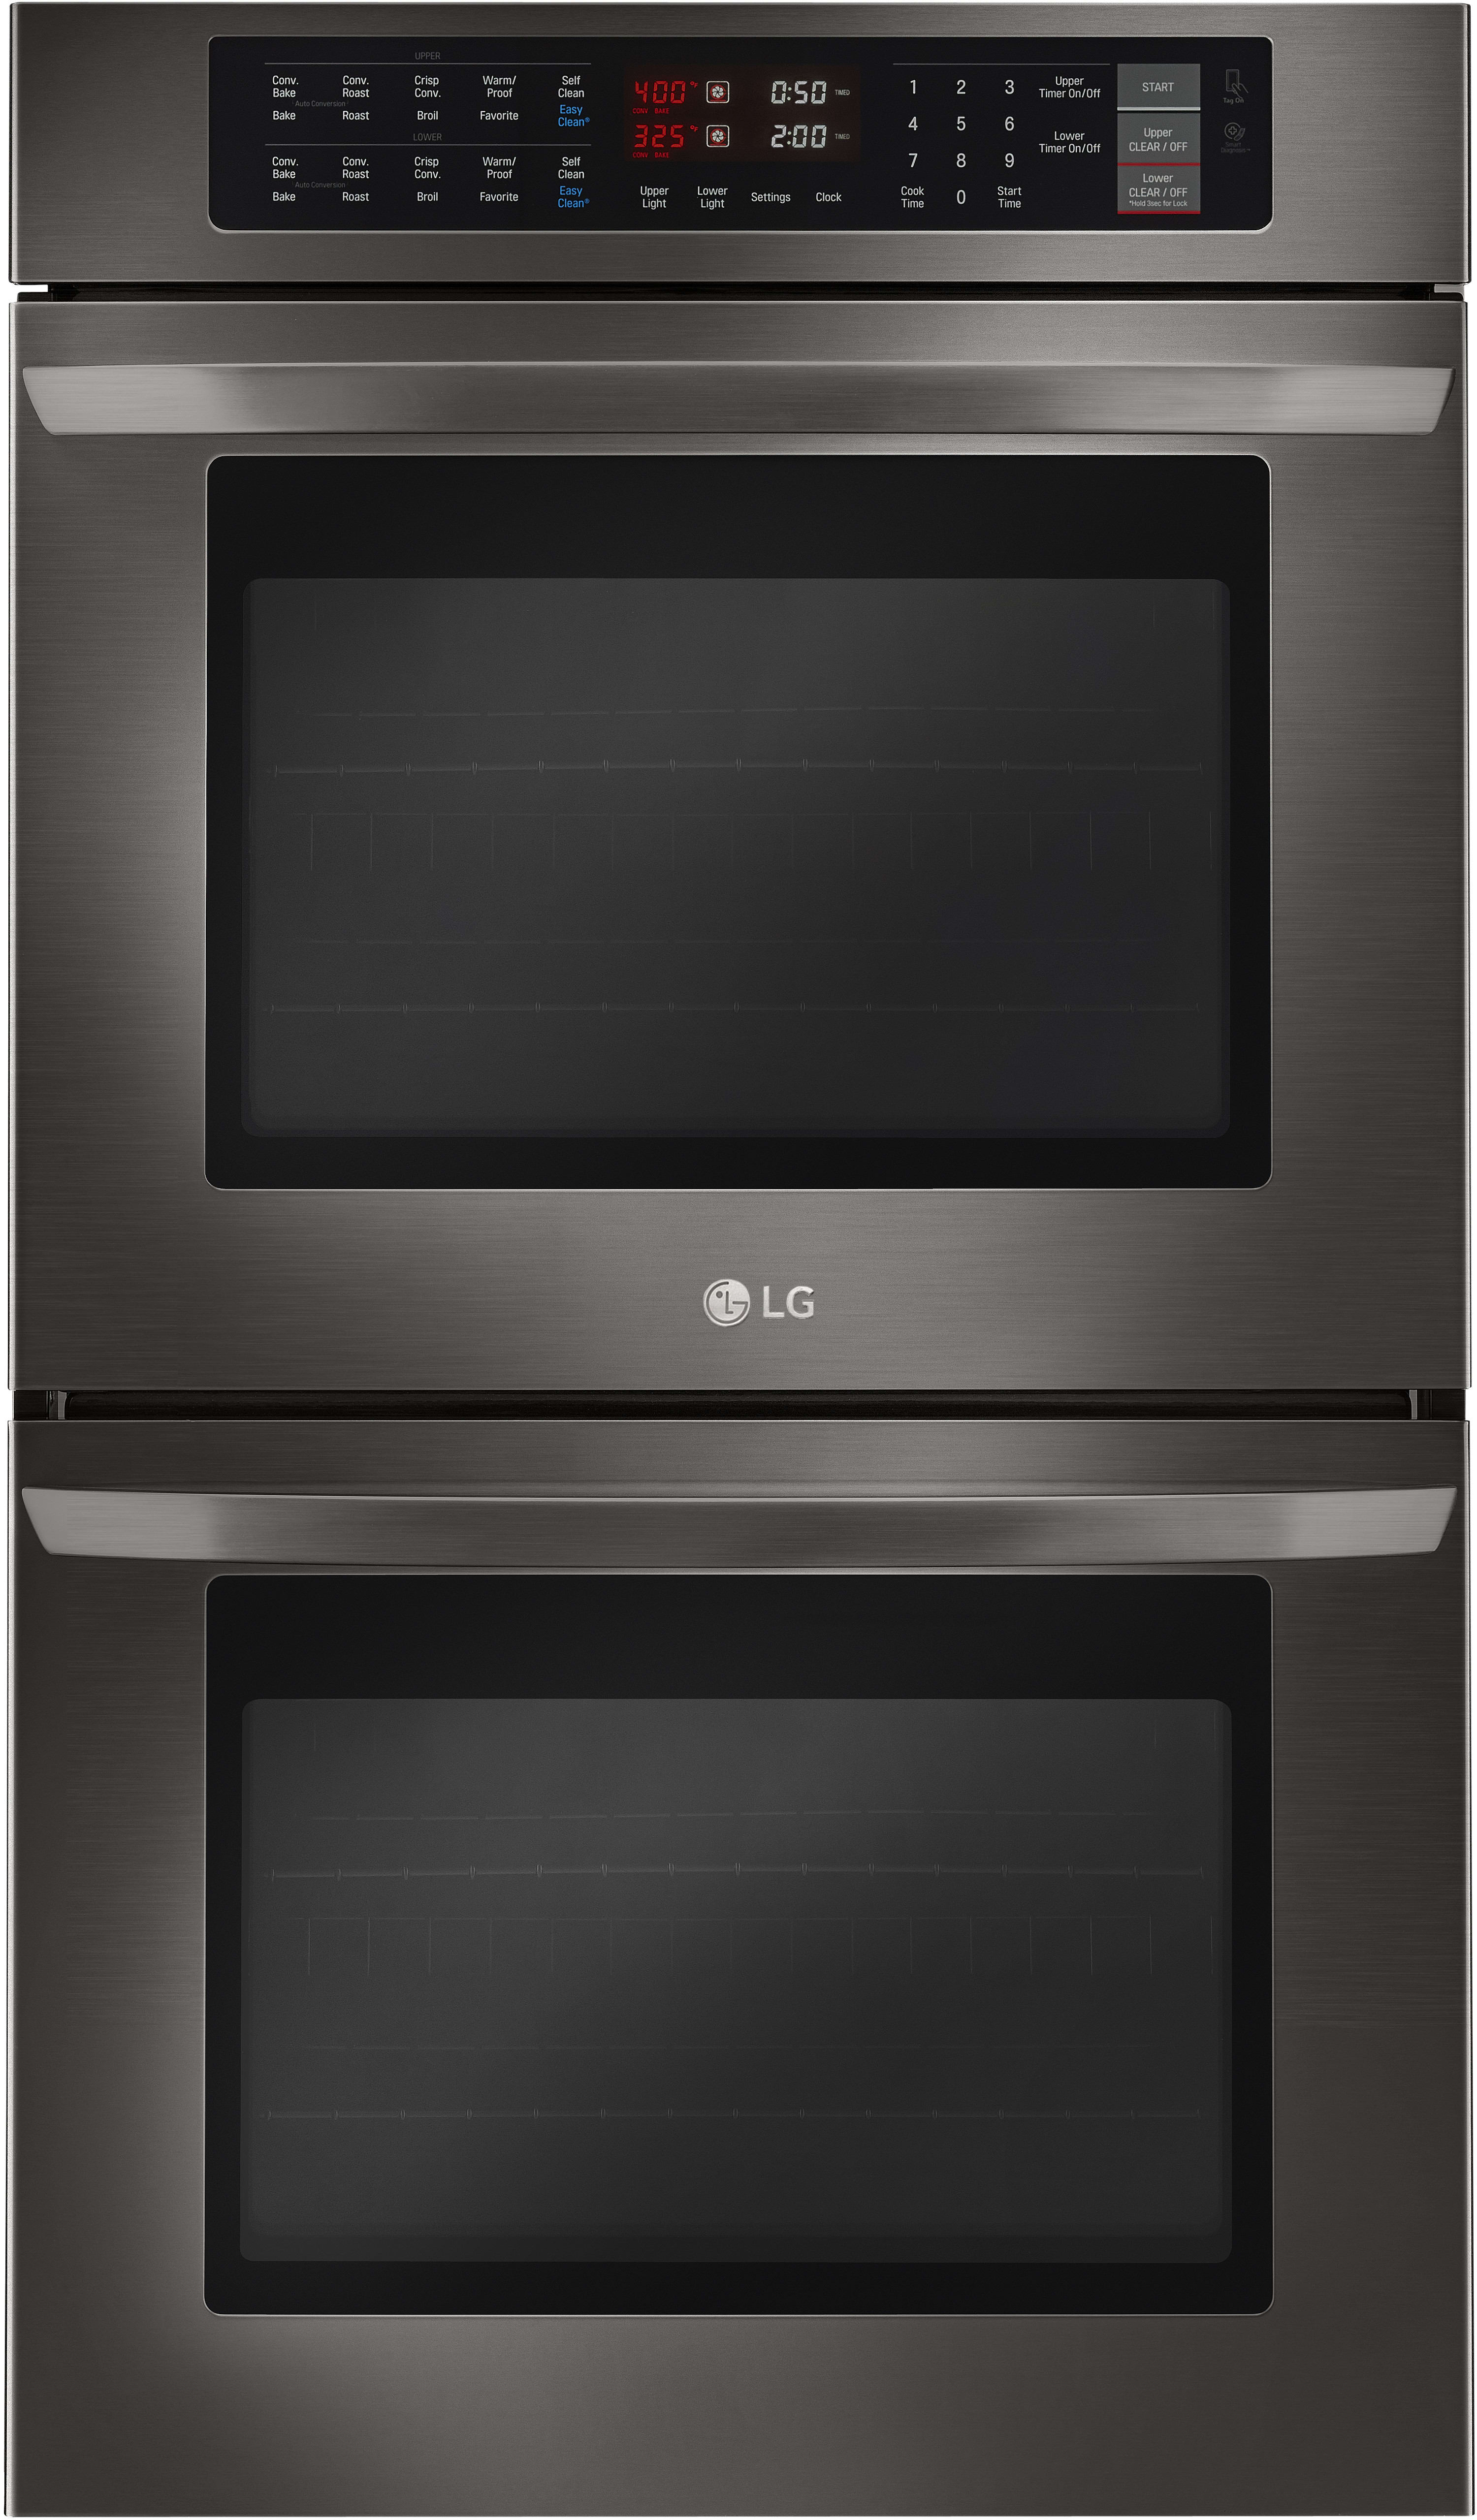 westinghouse induction cooktop instructions